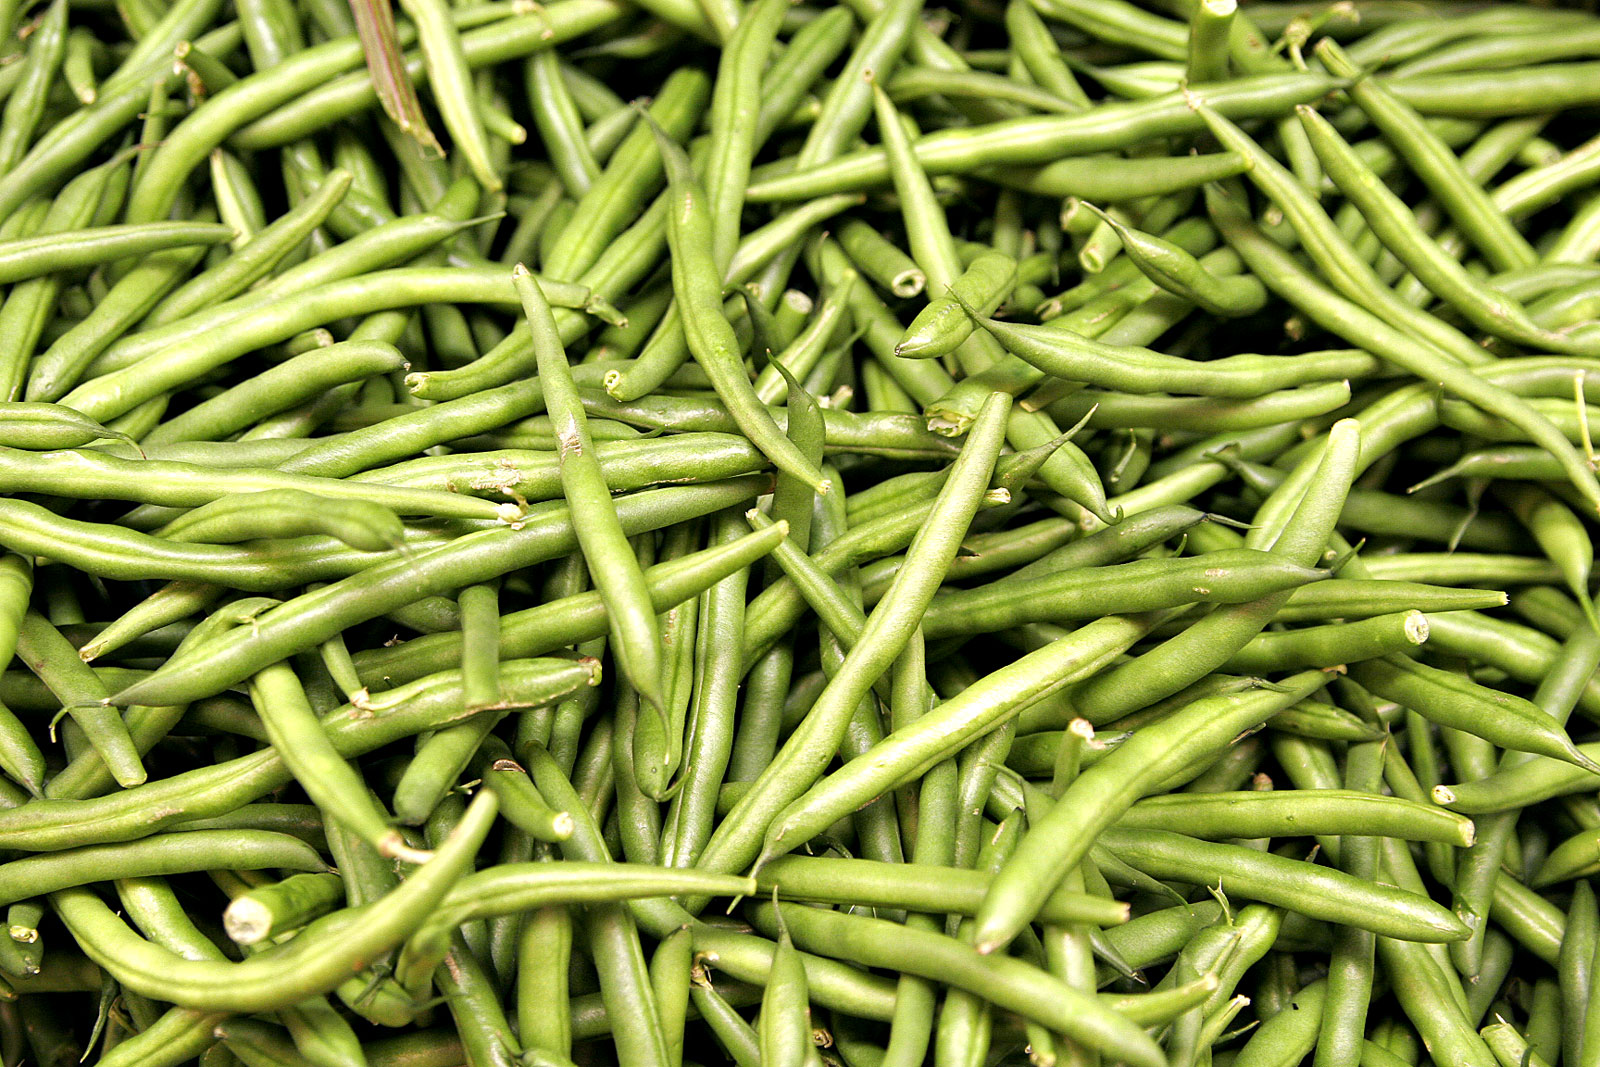 image of green bean